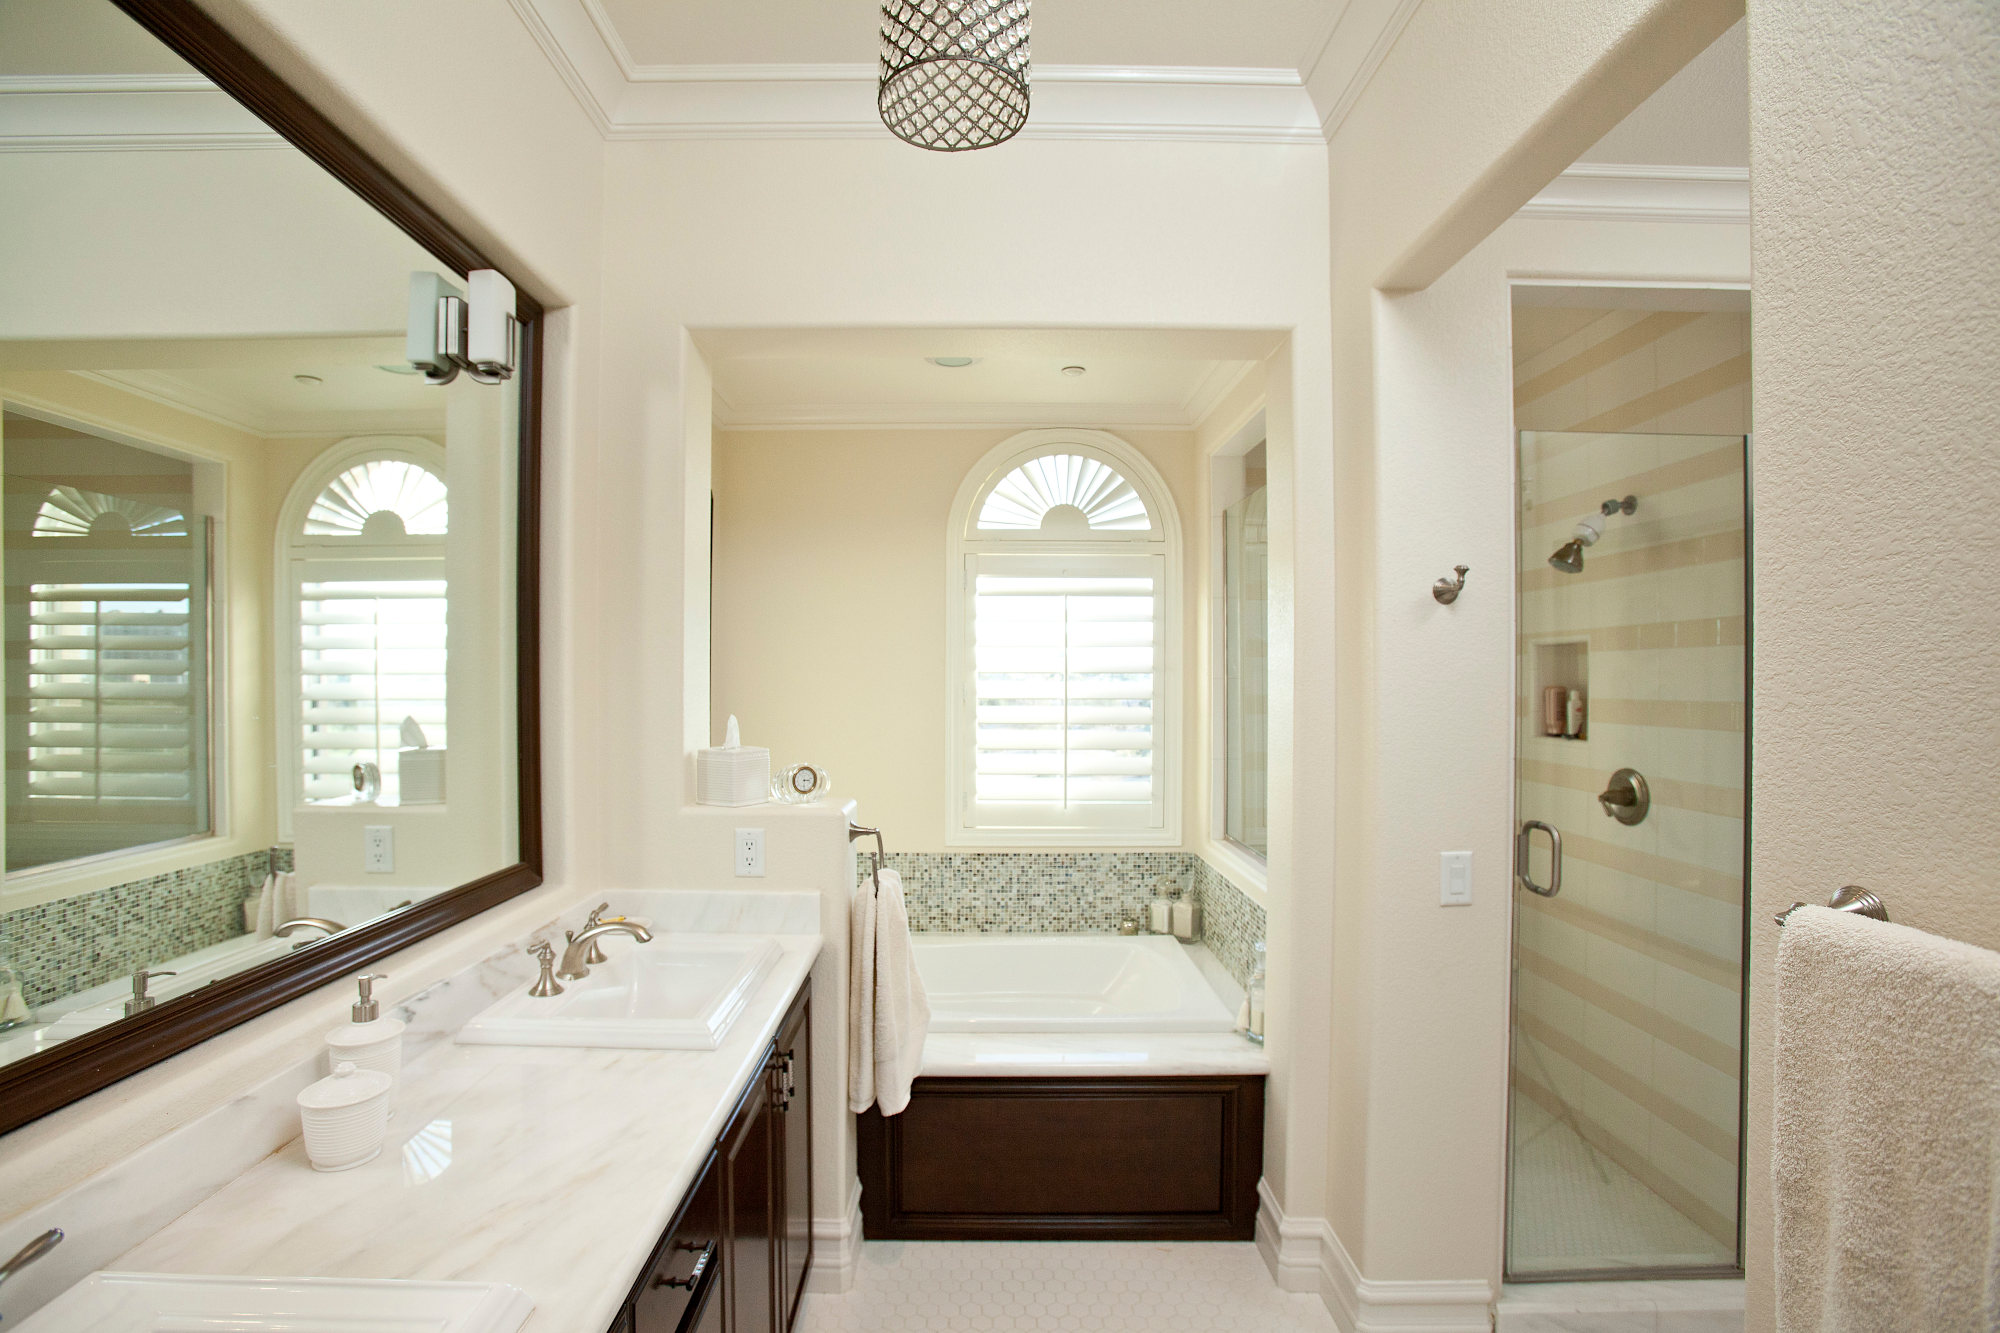 Spa inspired master bath with marble counters, neutral colors with large walk-in shower.